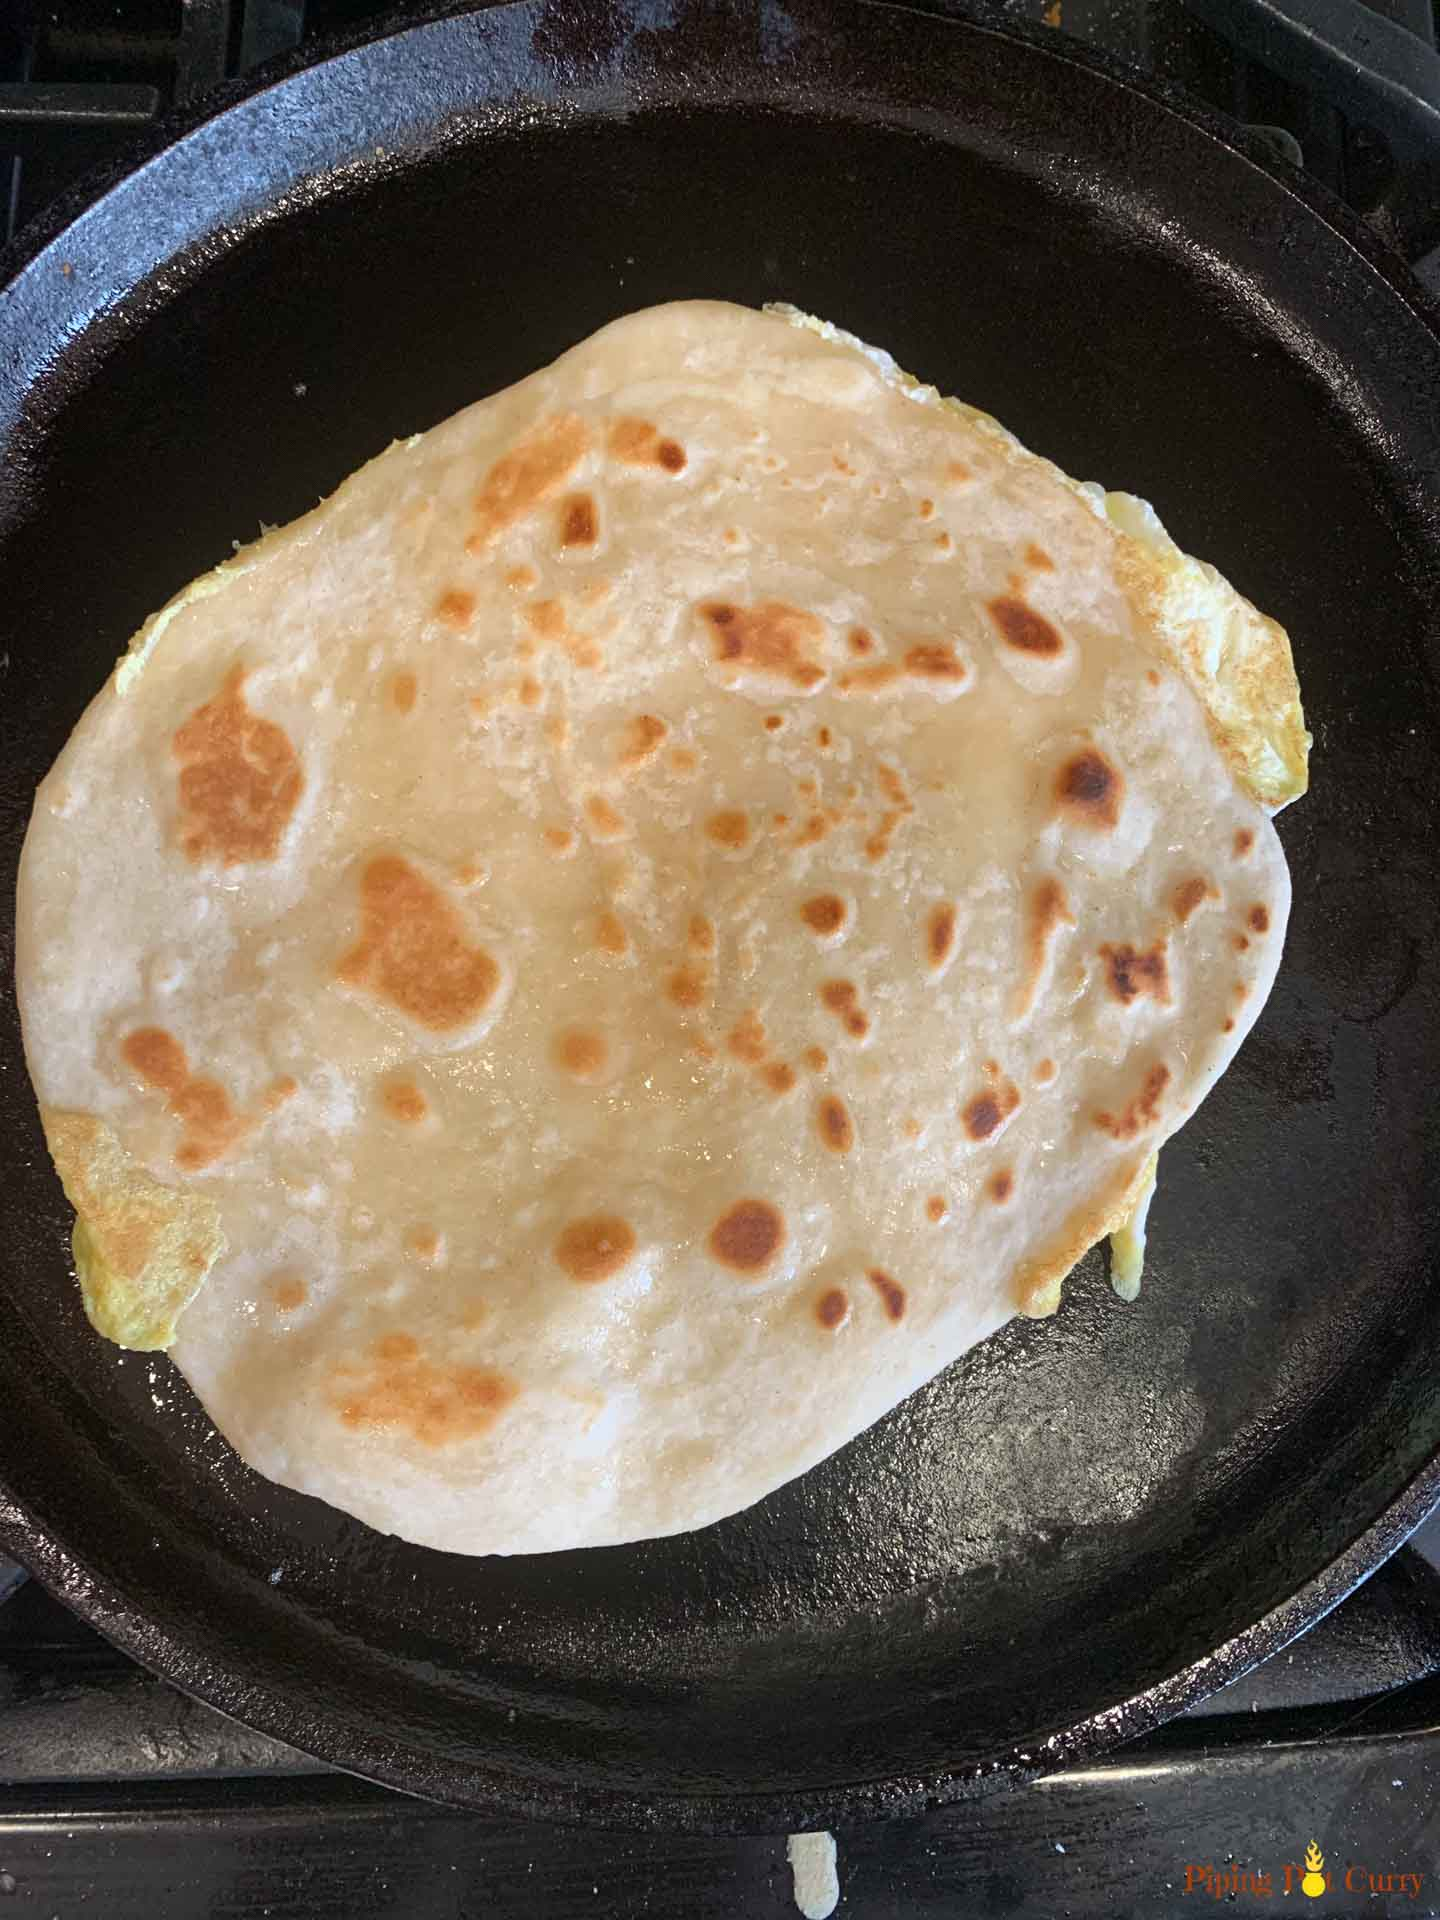 A flatbread being cooked on a pan